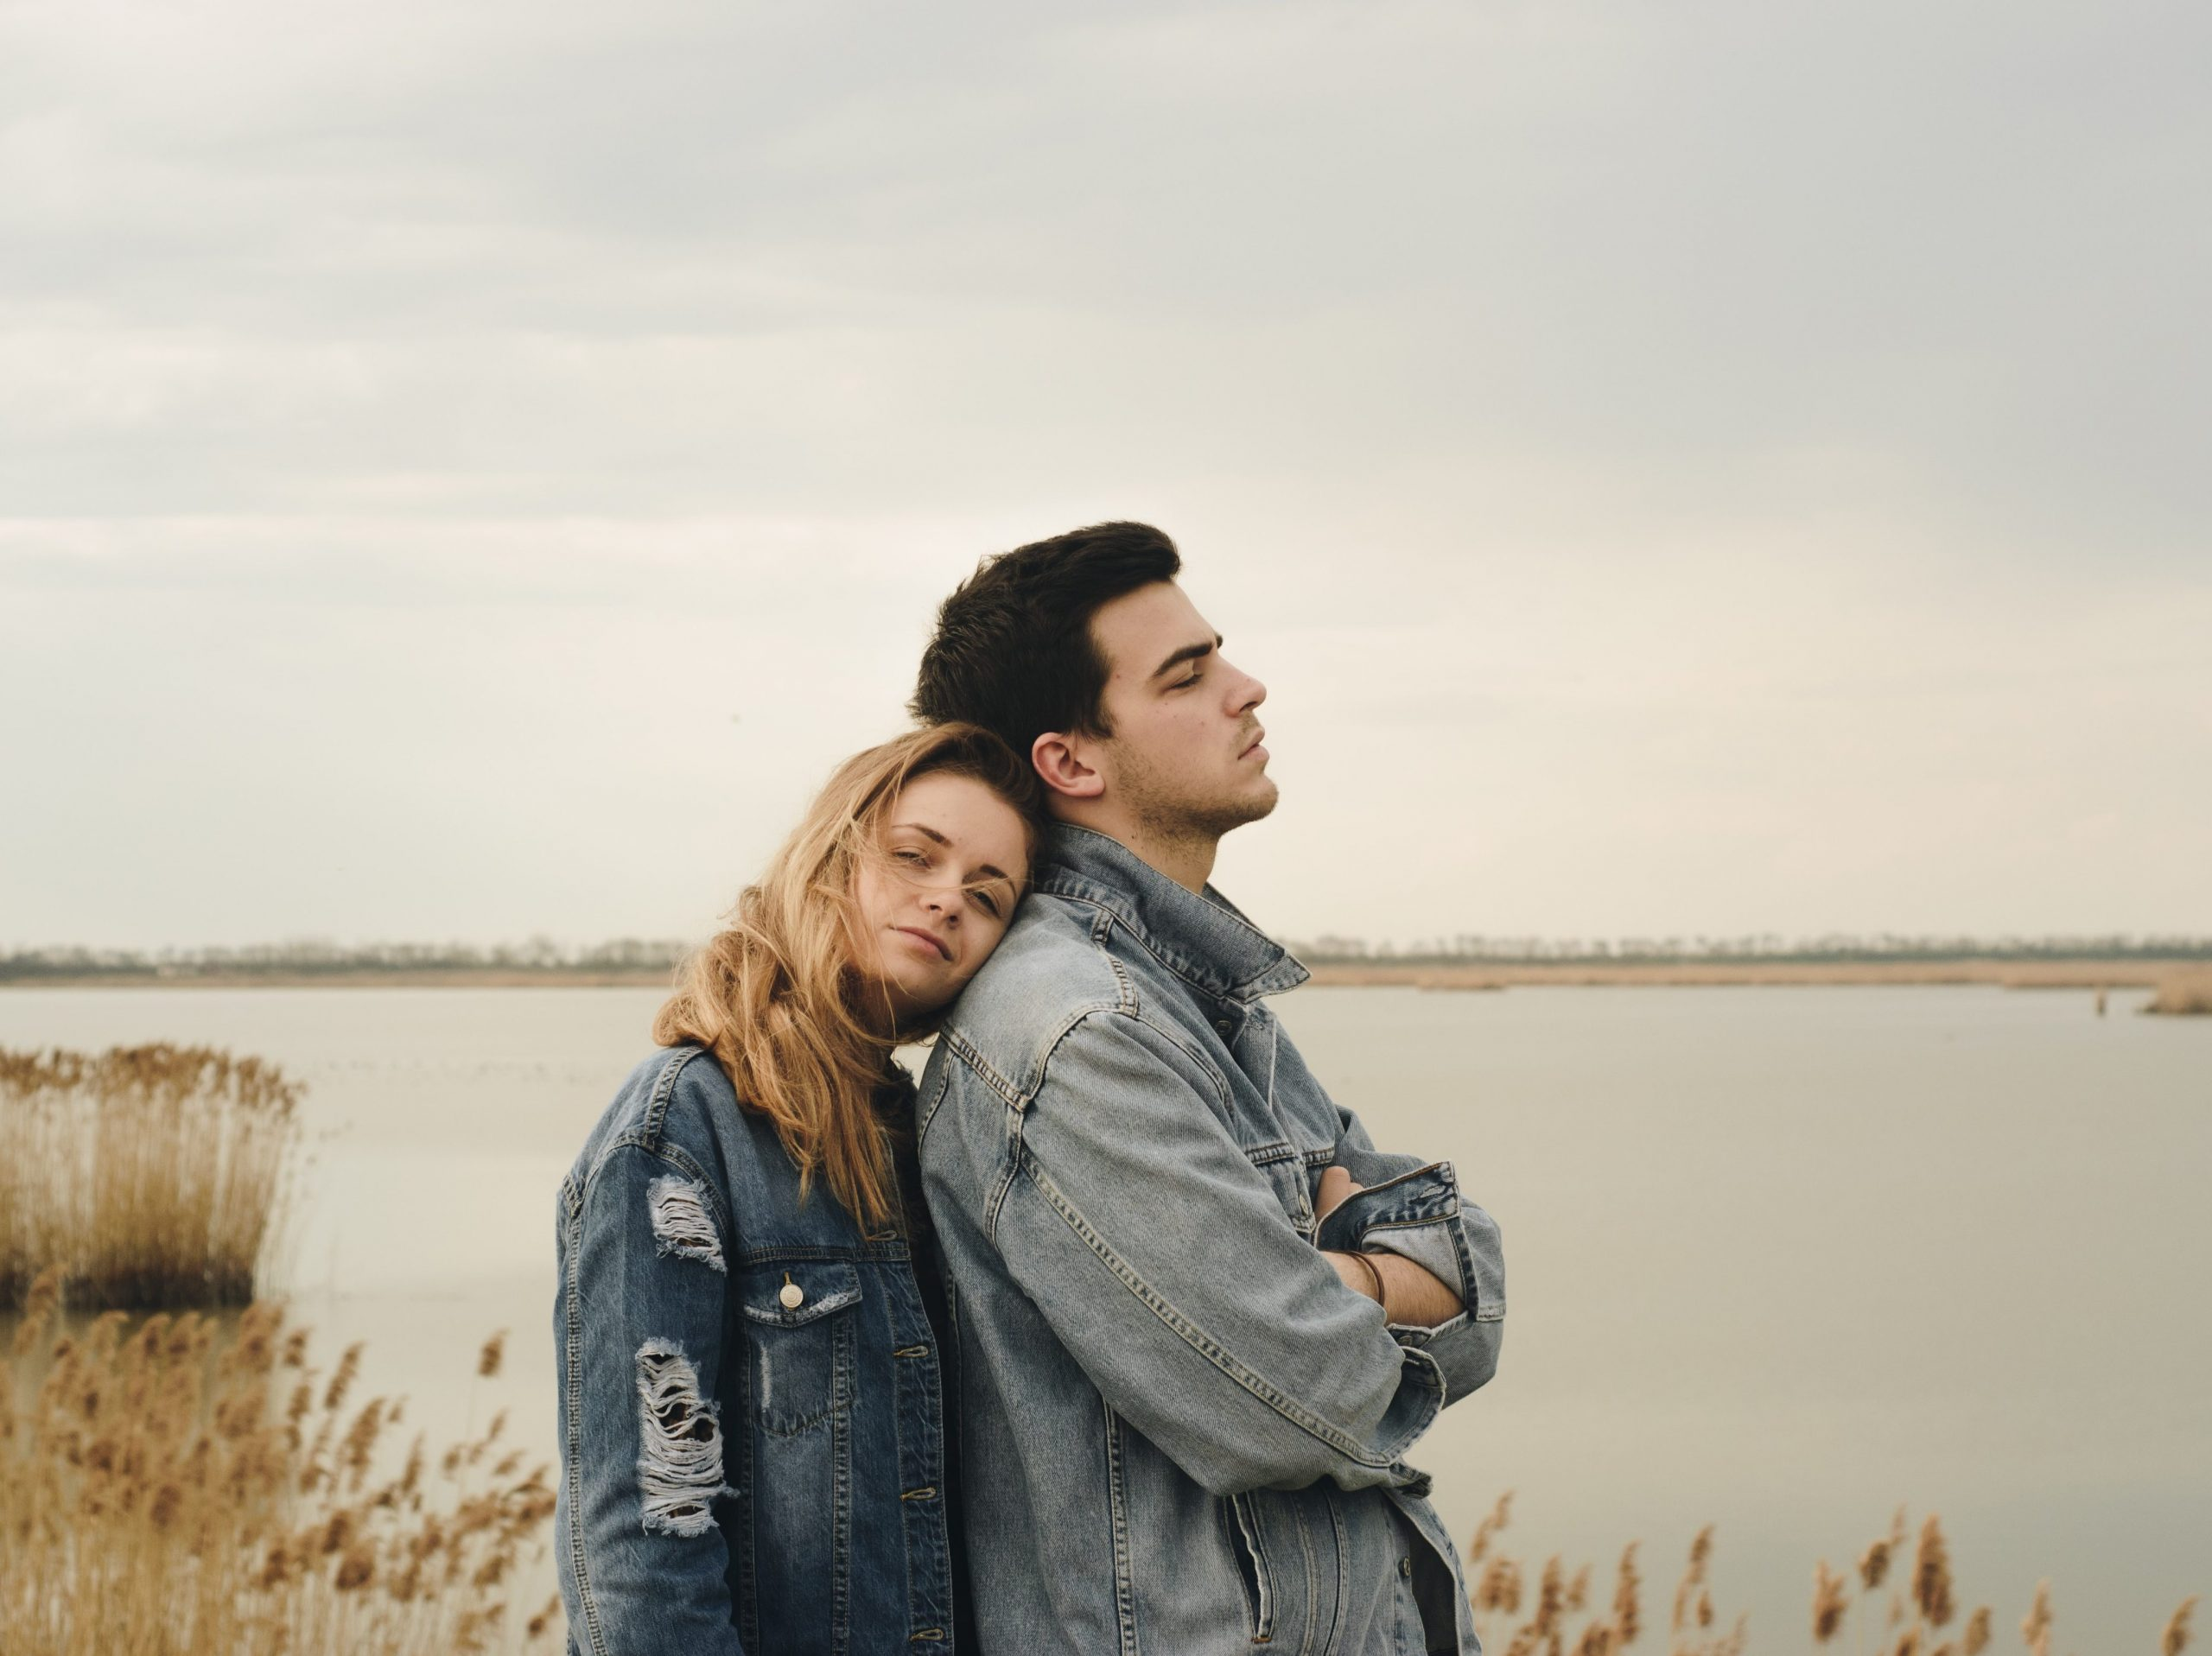 Female empath in a relationship